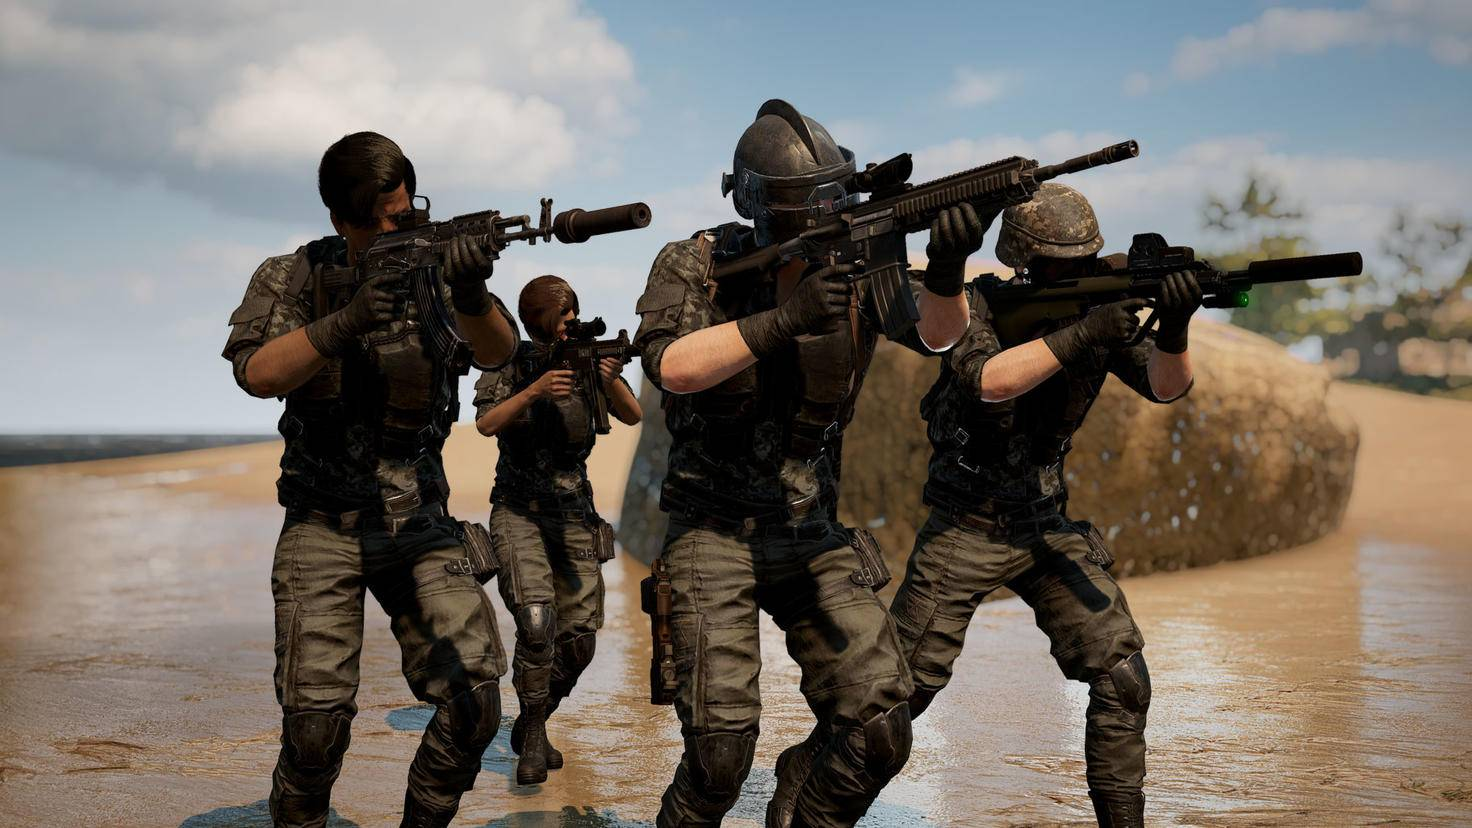 pubg-squad-season-6-screenshot